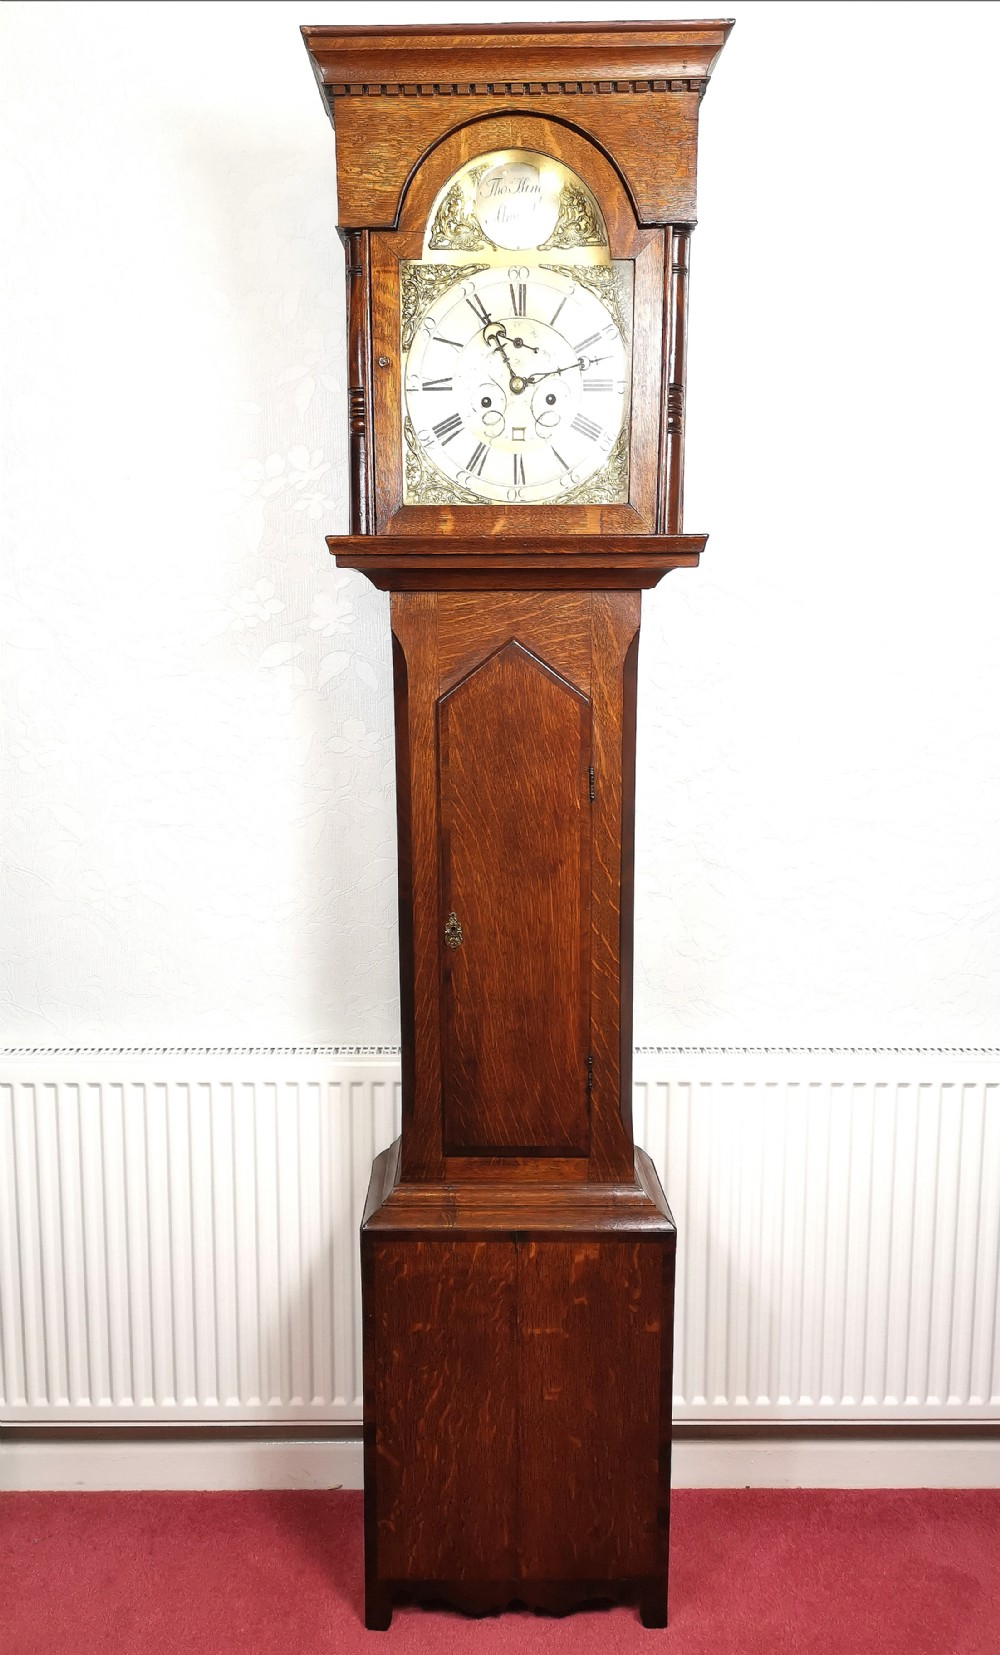 english 18th c georgian oak grandfather longcase clock by thomas king of alnwick with brass dial and silvered chapter ring